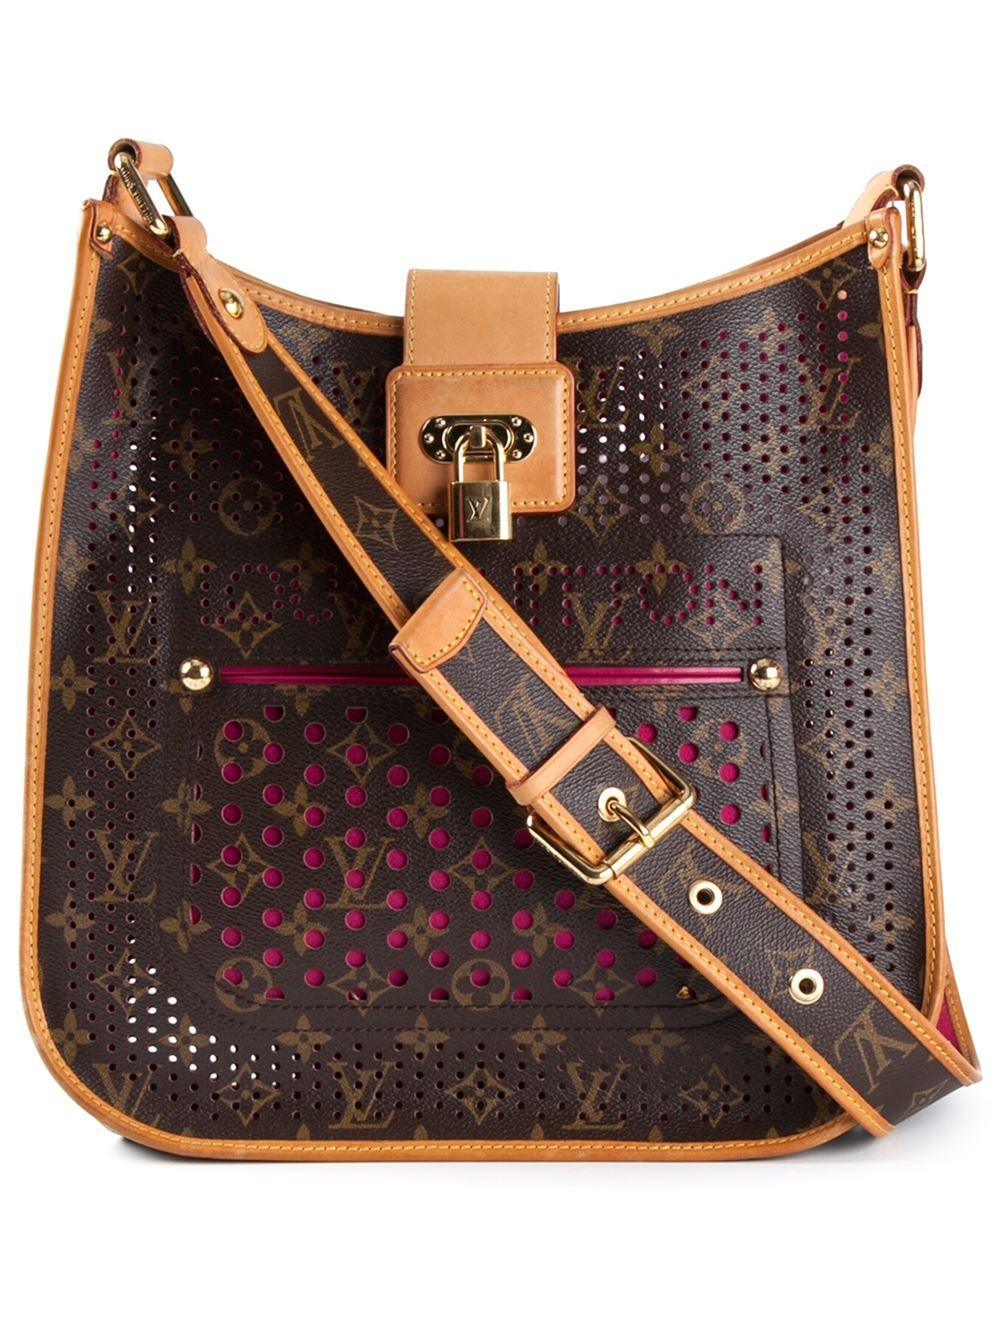 a420438e0971 Louis Vuitton Vintage Monogrammed from farfetch